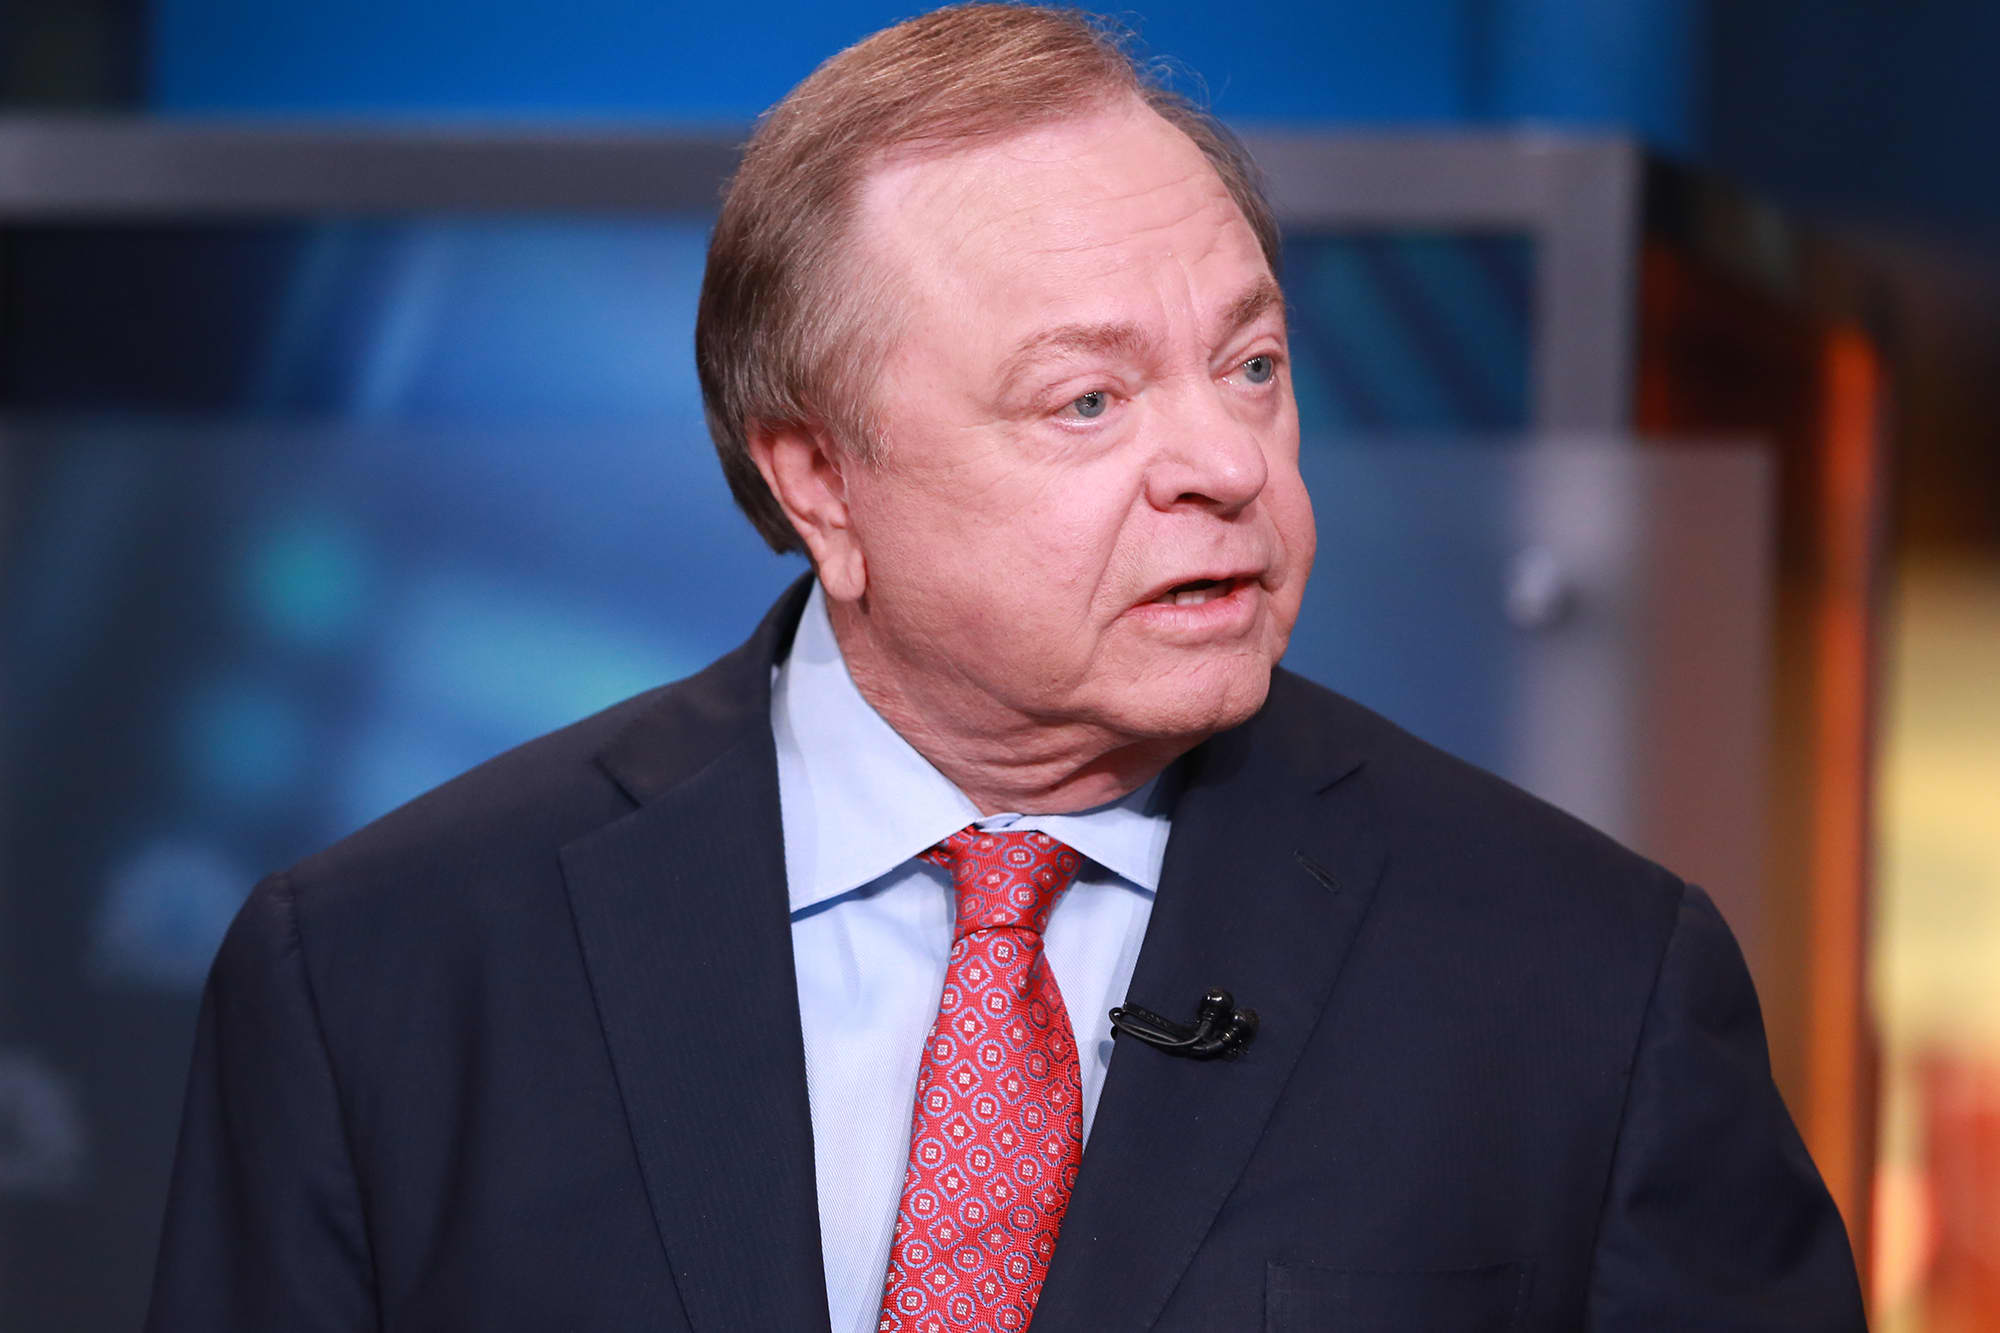 North Dakota's Bakken shale oil fields are stronger than ever, says billionaire drilling pioneer Harold Hamm